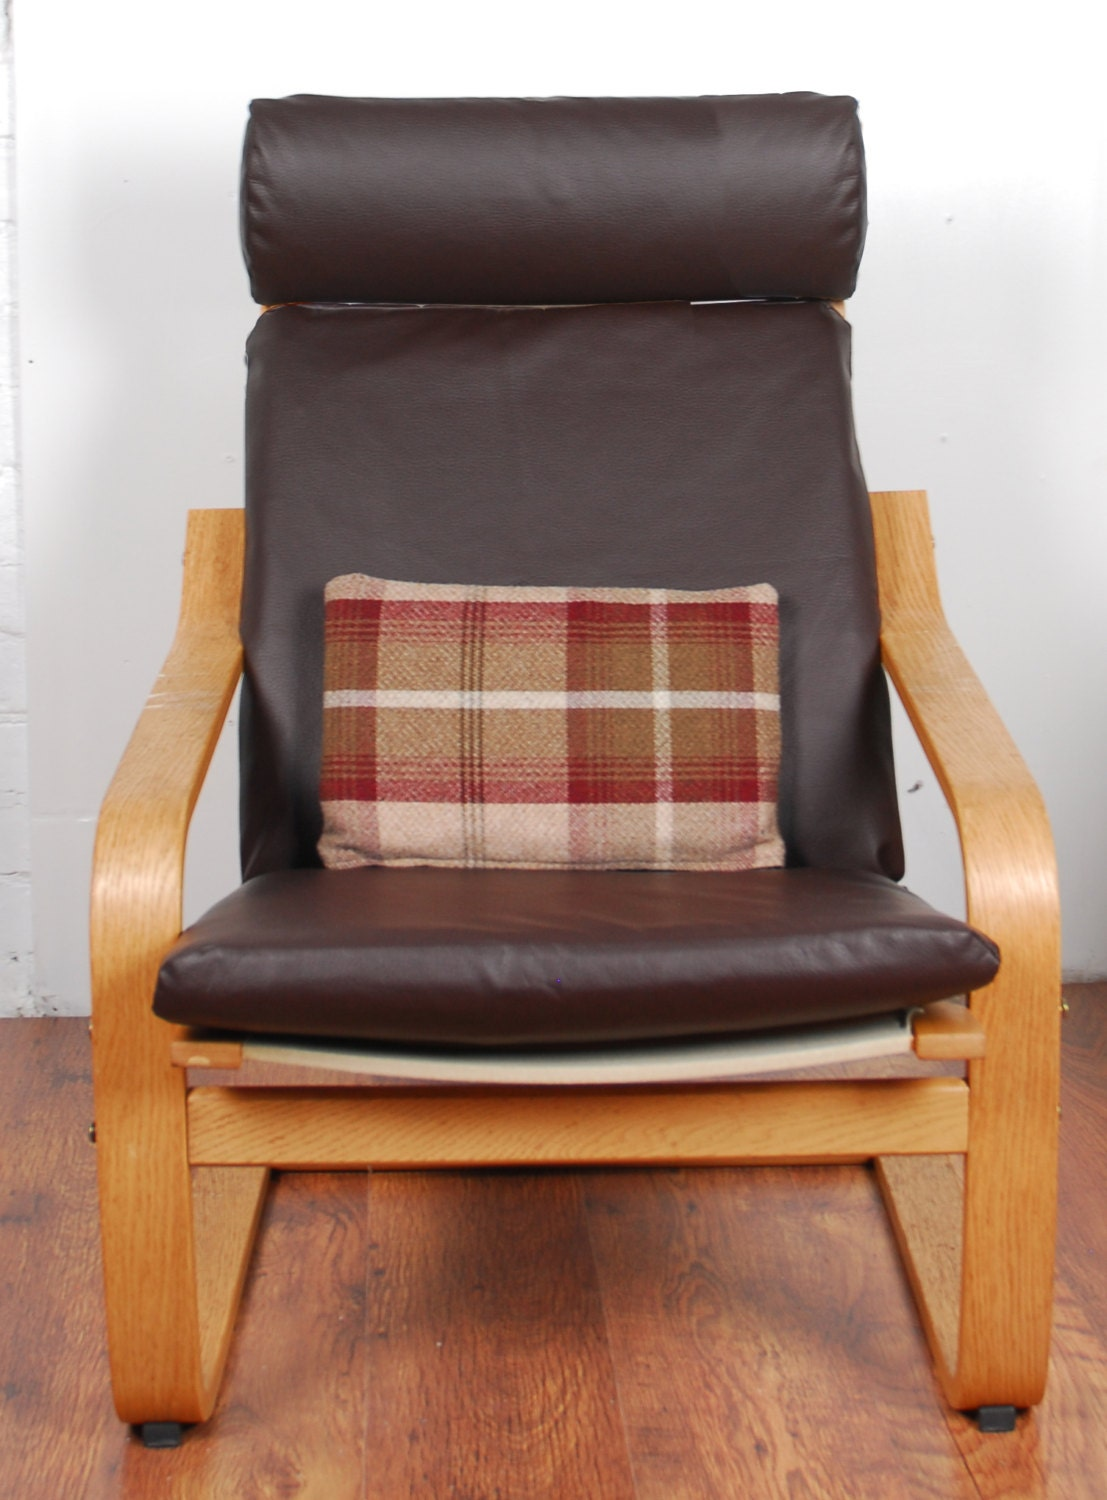 Slip cover for the Ikea poang chair in faux leather fabric